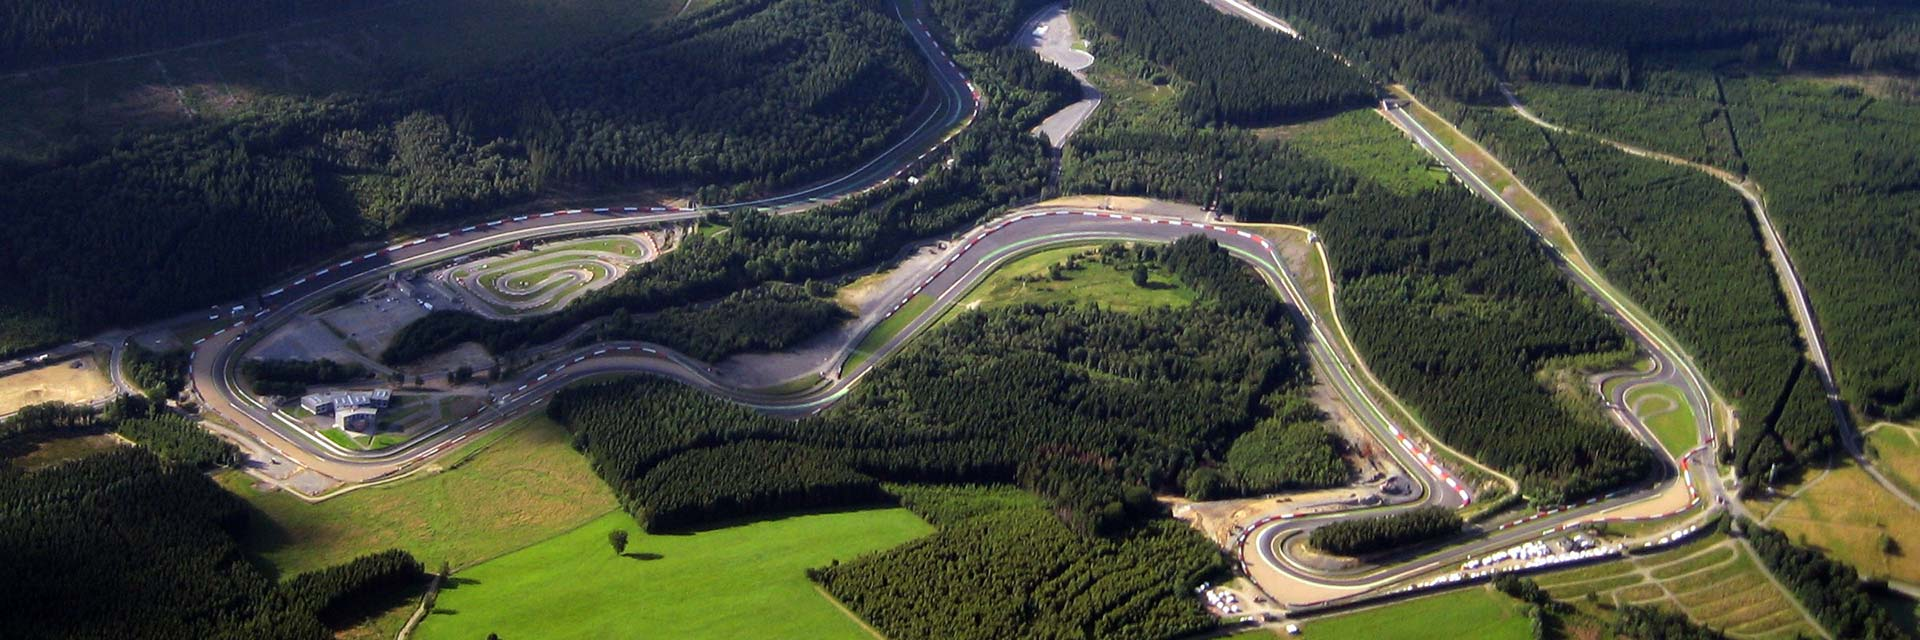 GEDLICH Racing Racetracks - Spa-Francorchamps